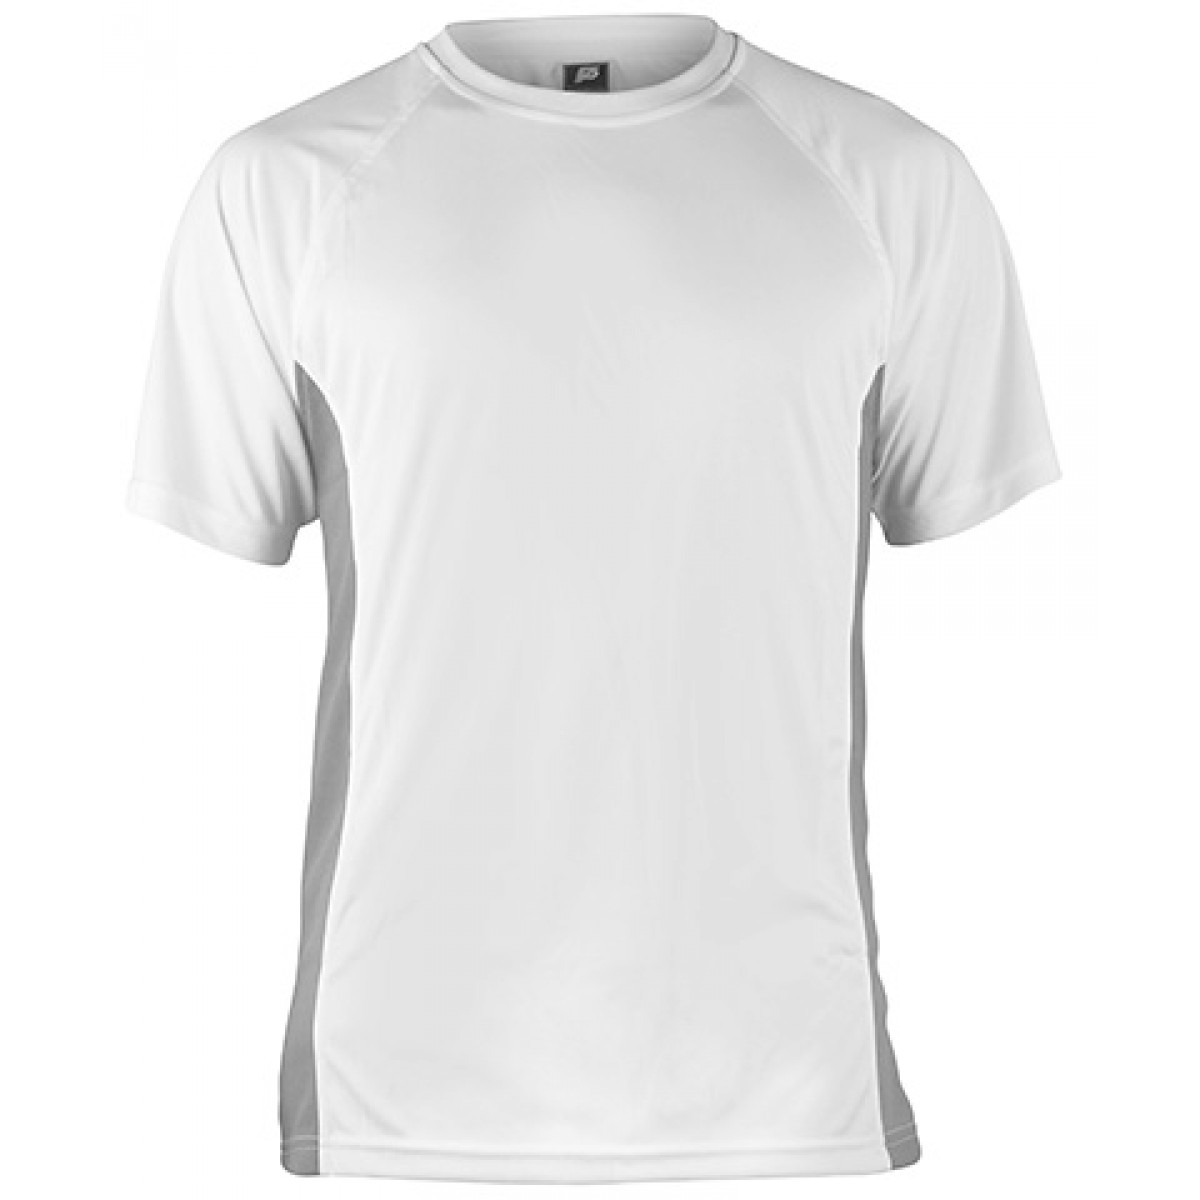 Short Sleeves Performance With Side Insert-White/Gray-XS